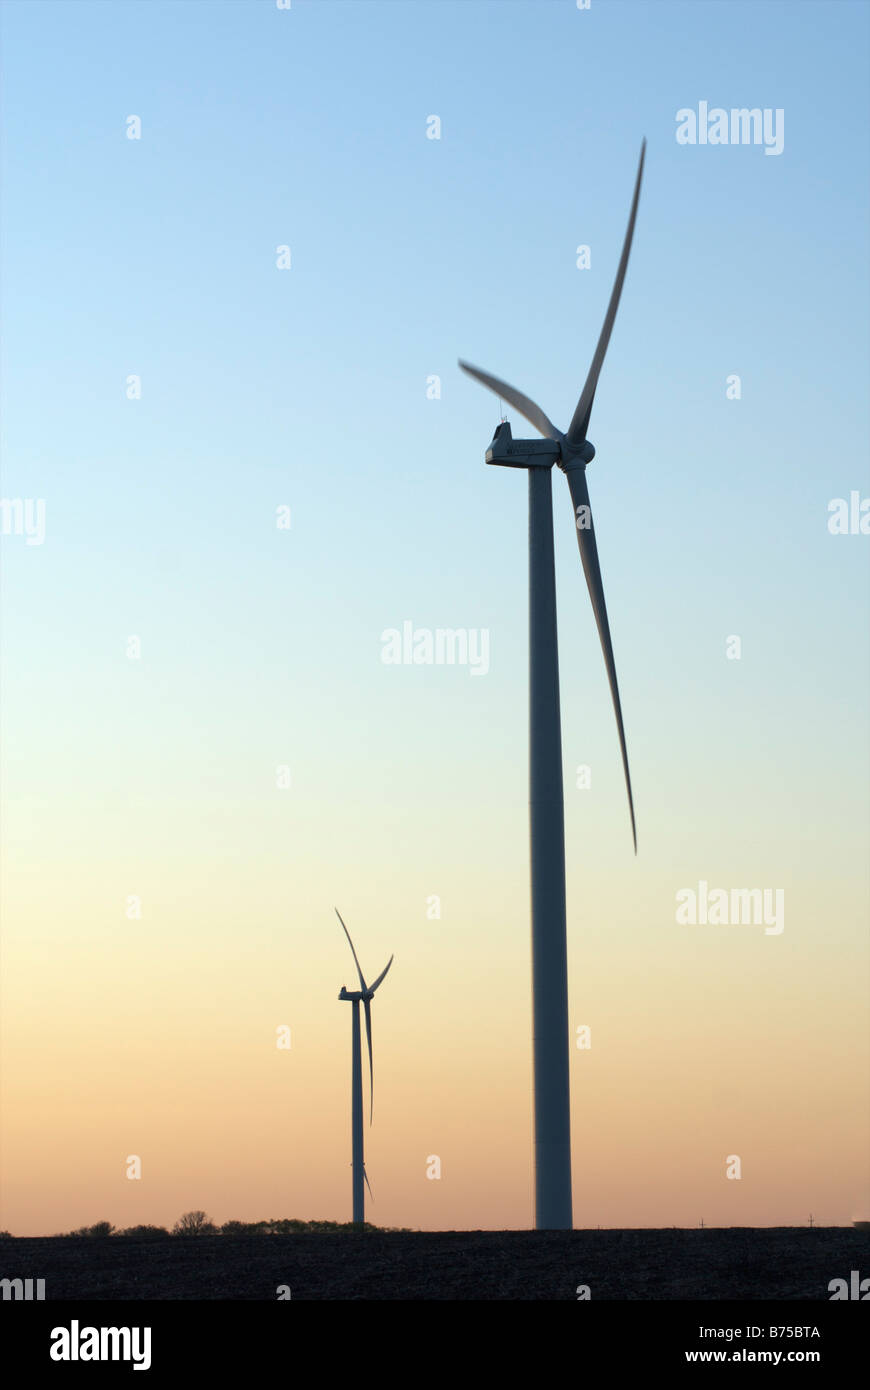 Two wind turbines at sunset - Stock Image